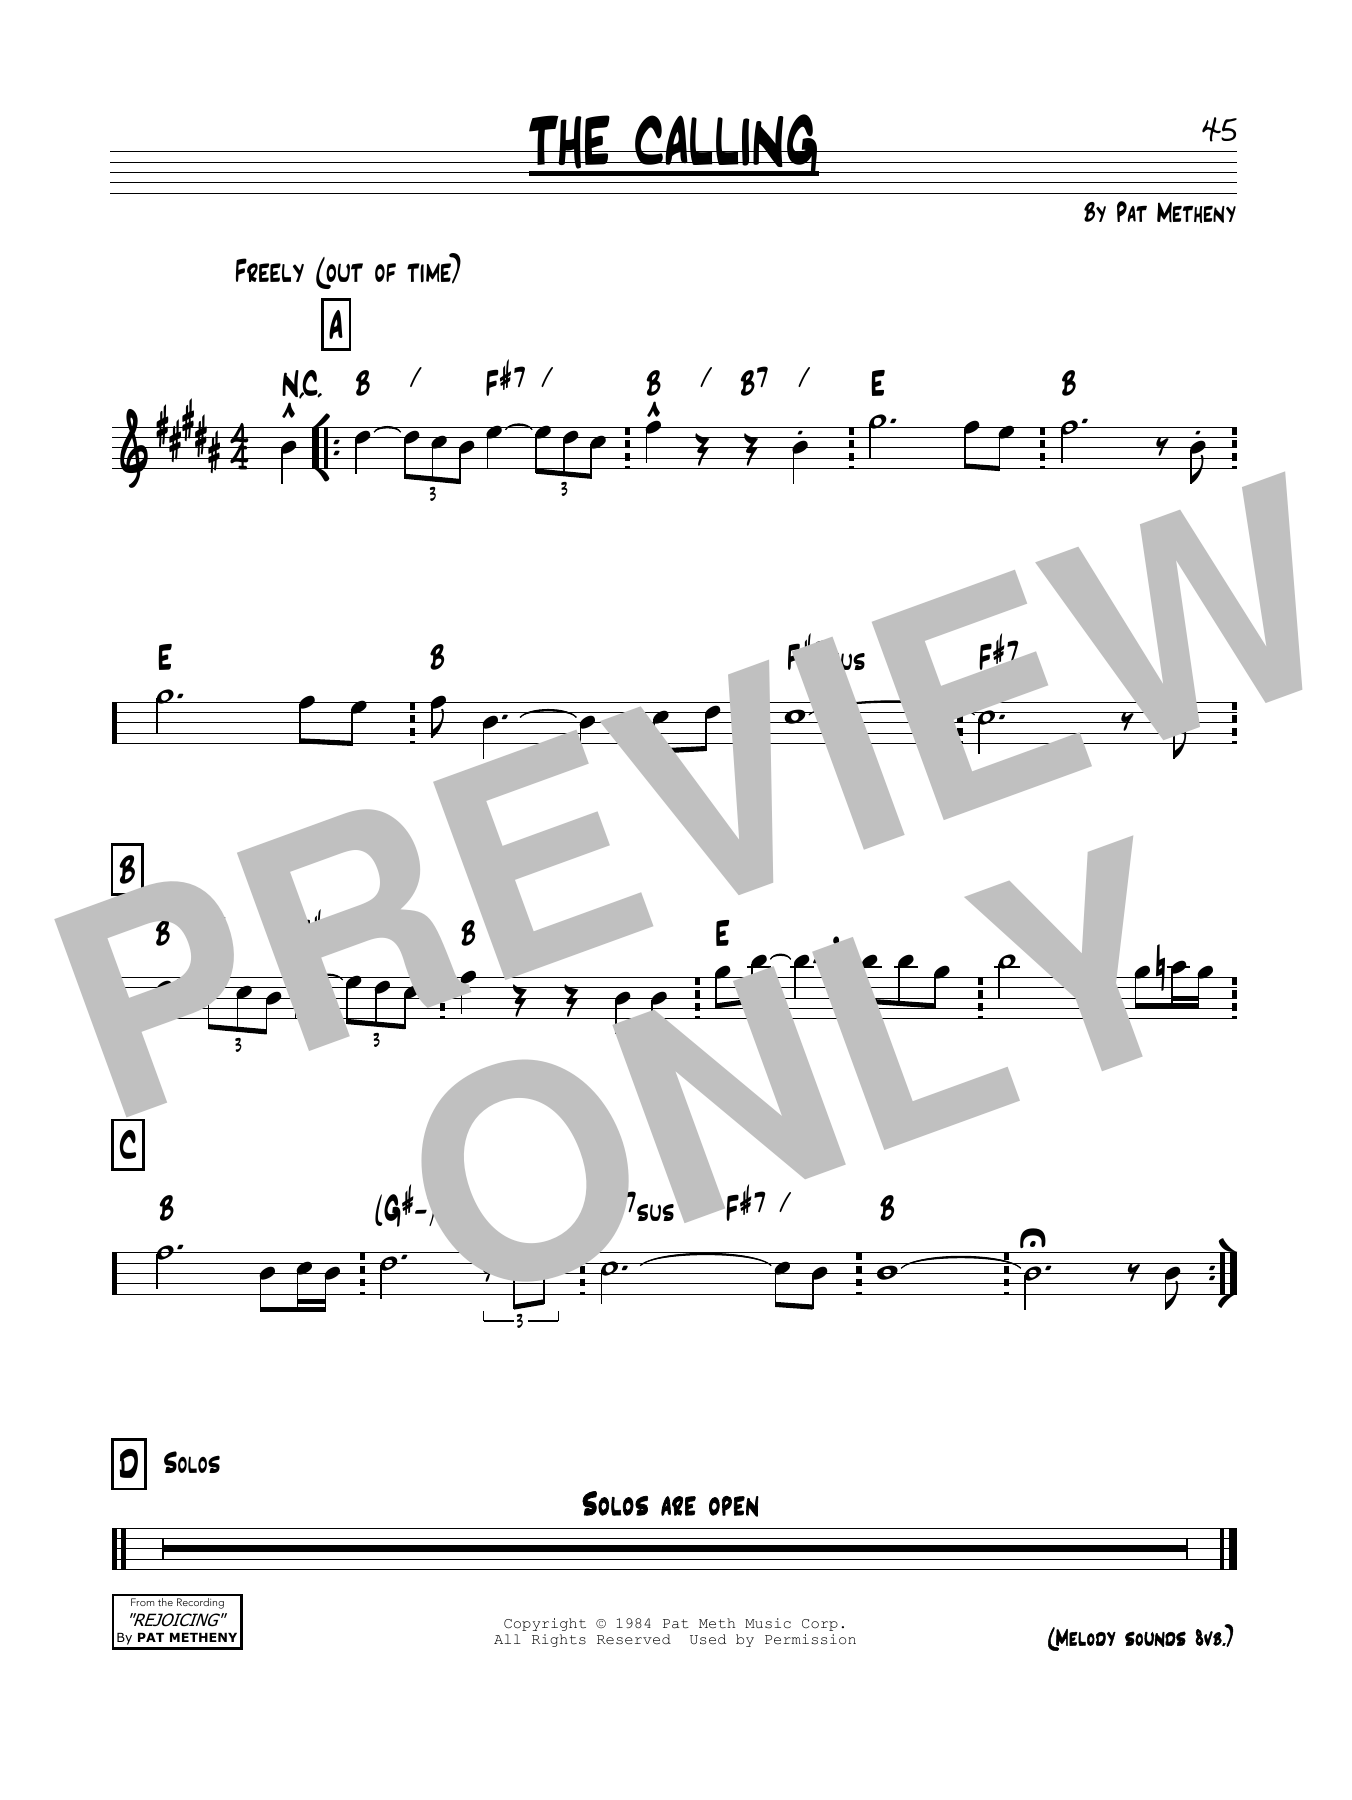 The Calling Sheet Music